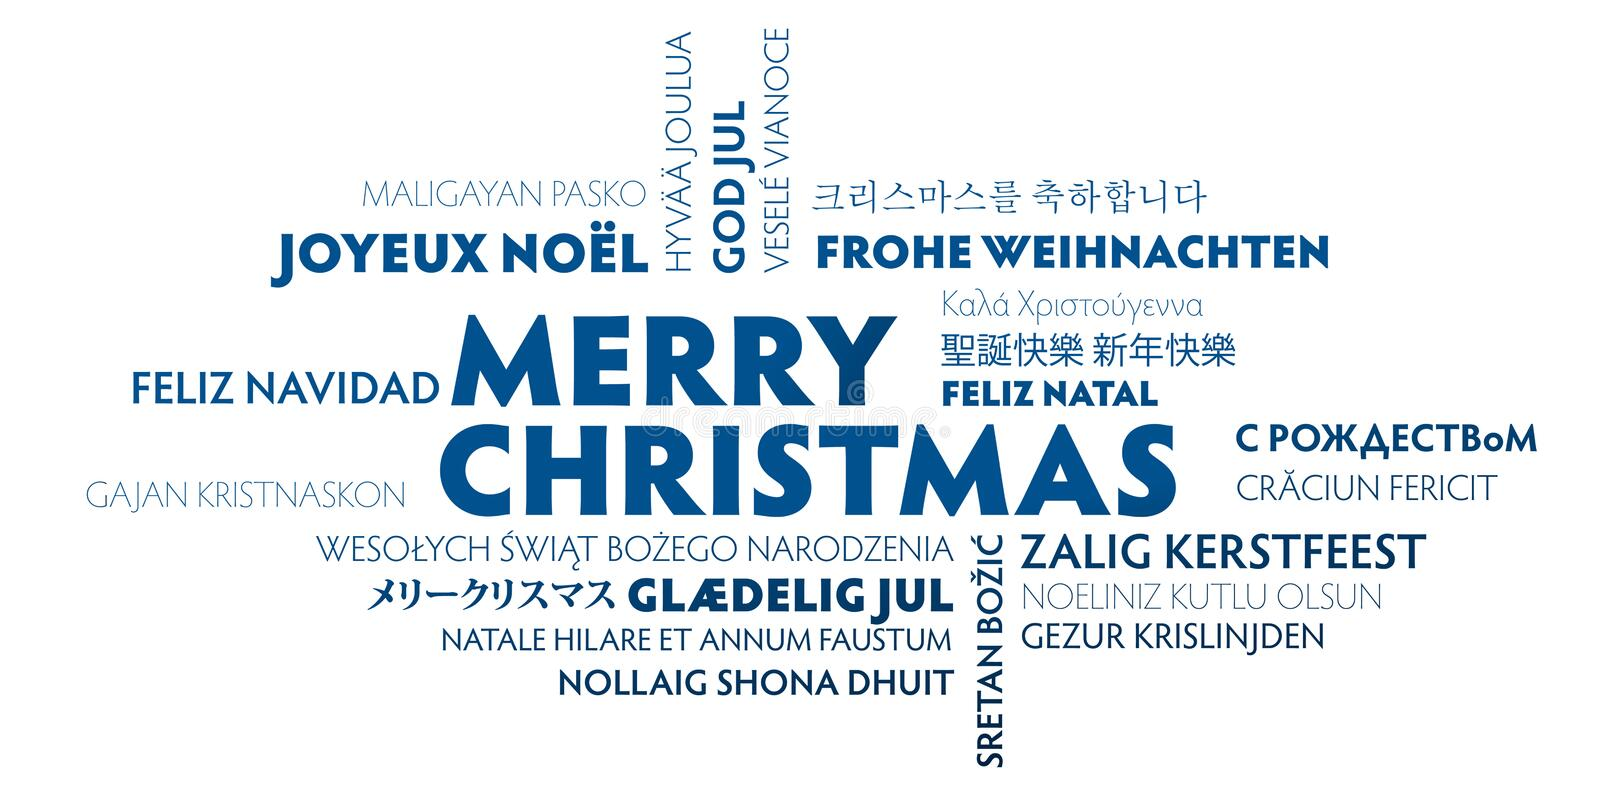 Merry christmas greeting card - blue and white vector illustration